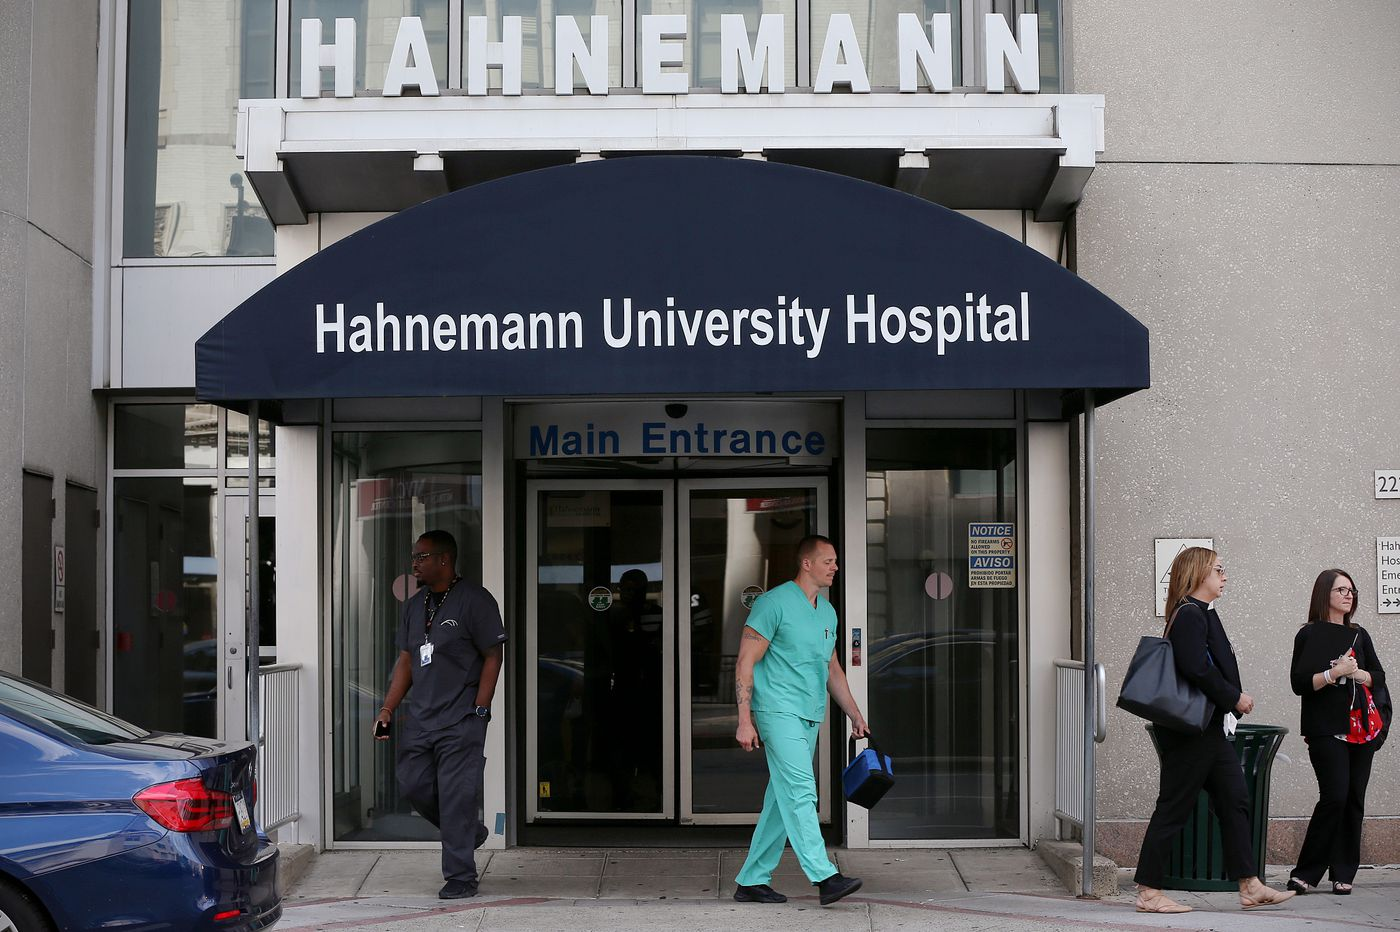 Philadelphia hospital closure a national warning sign